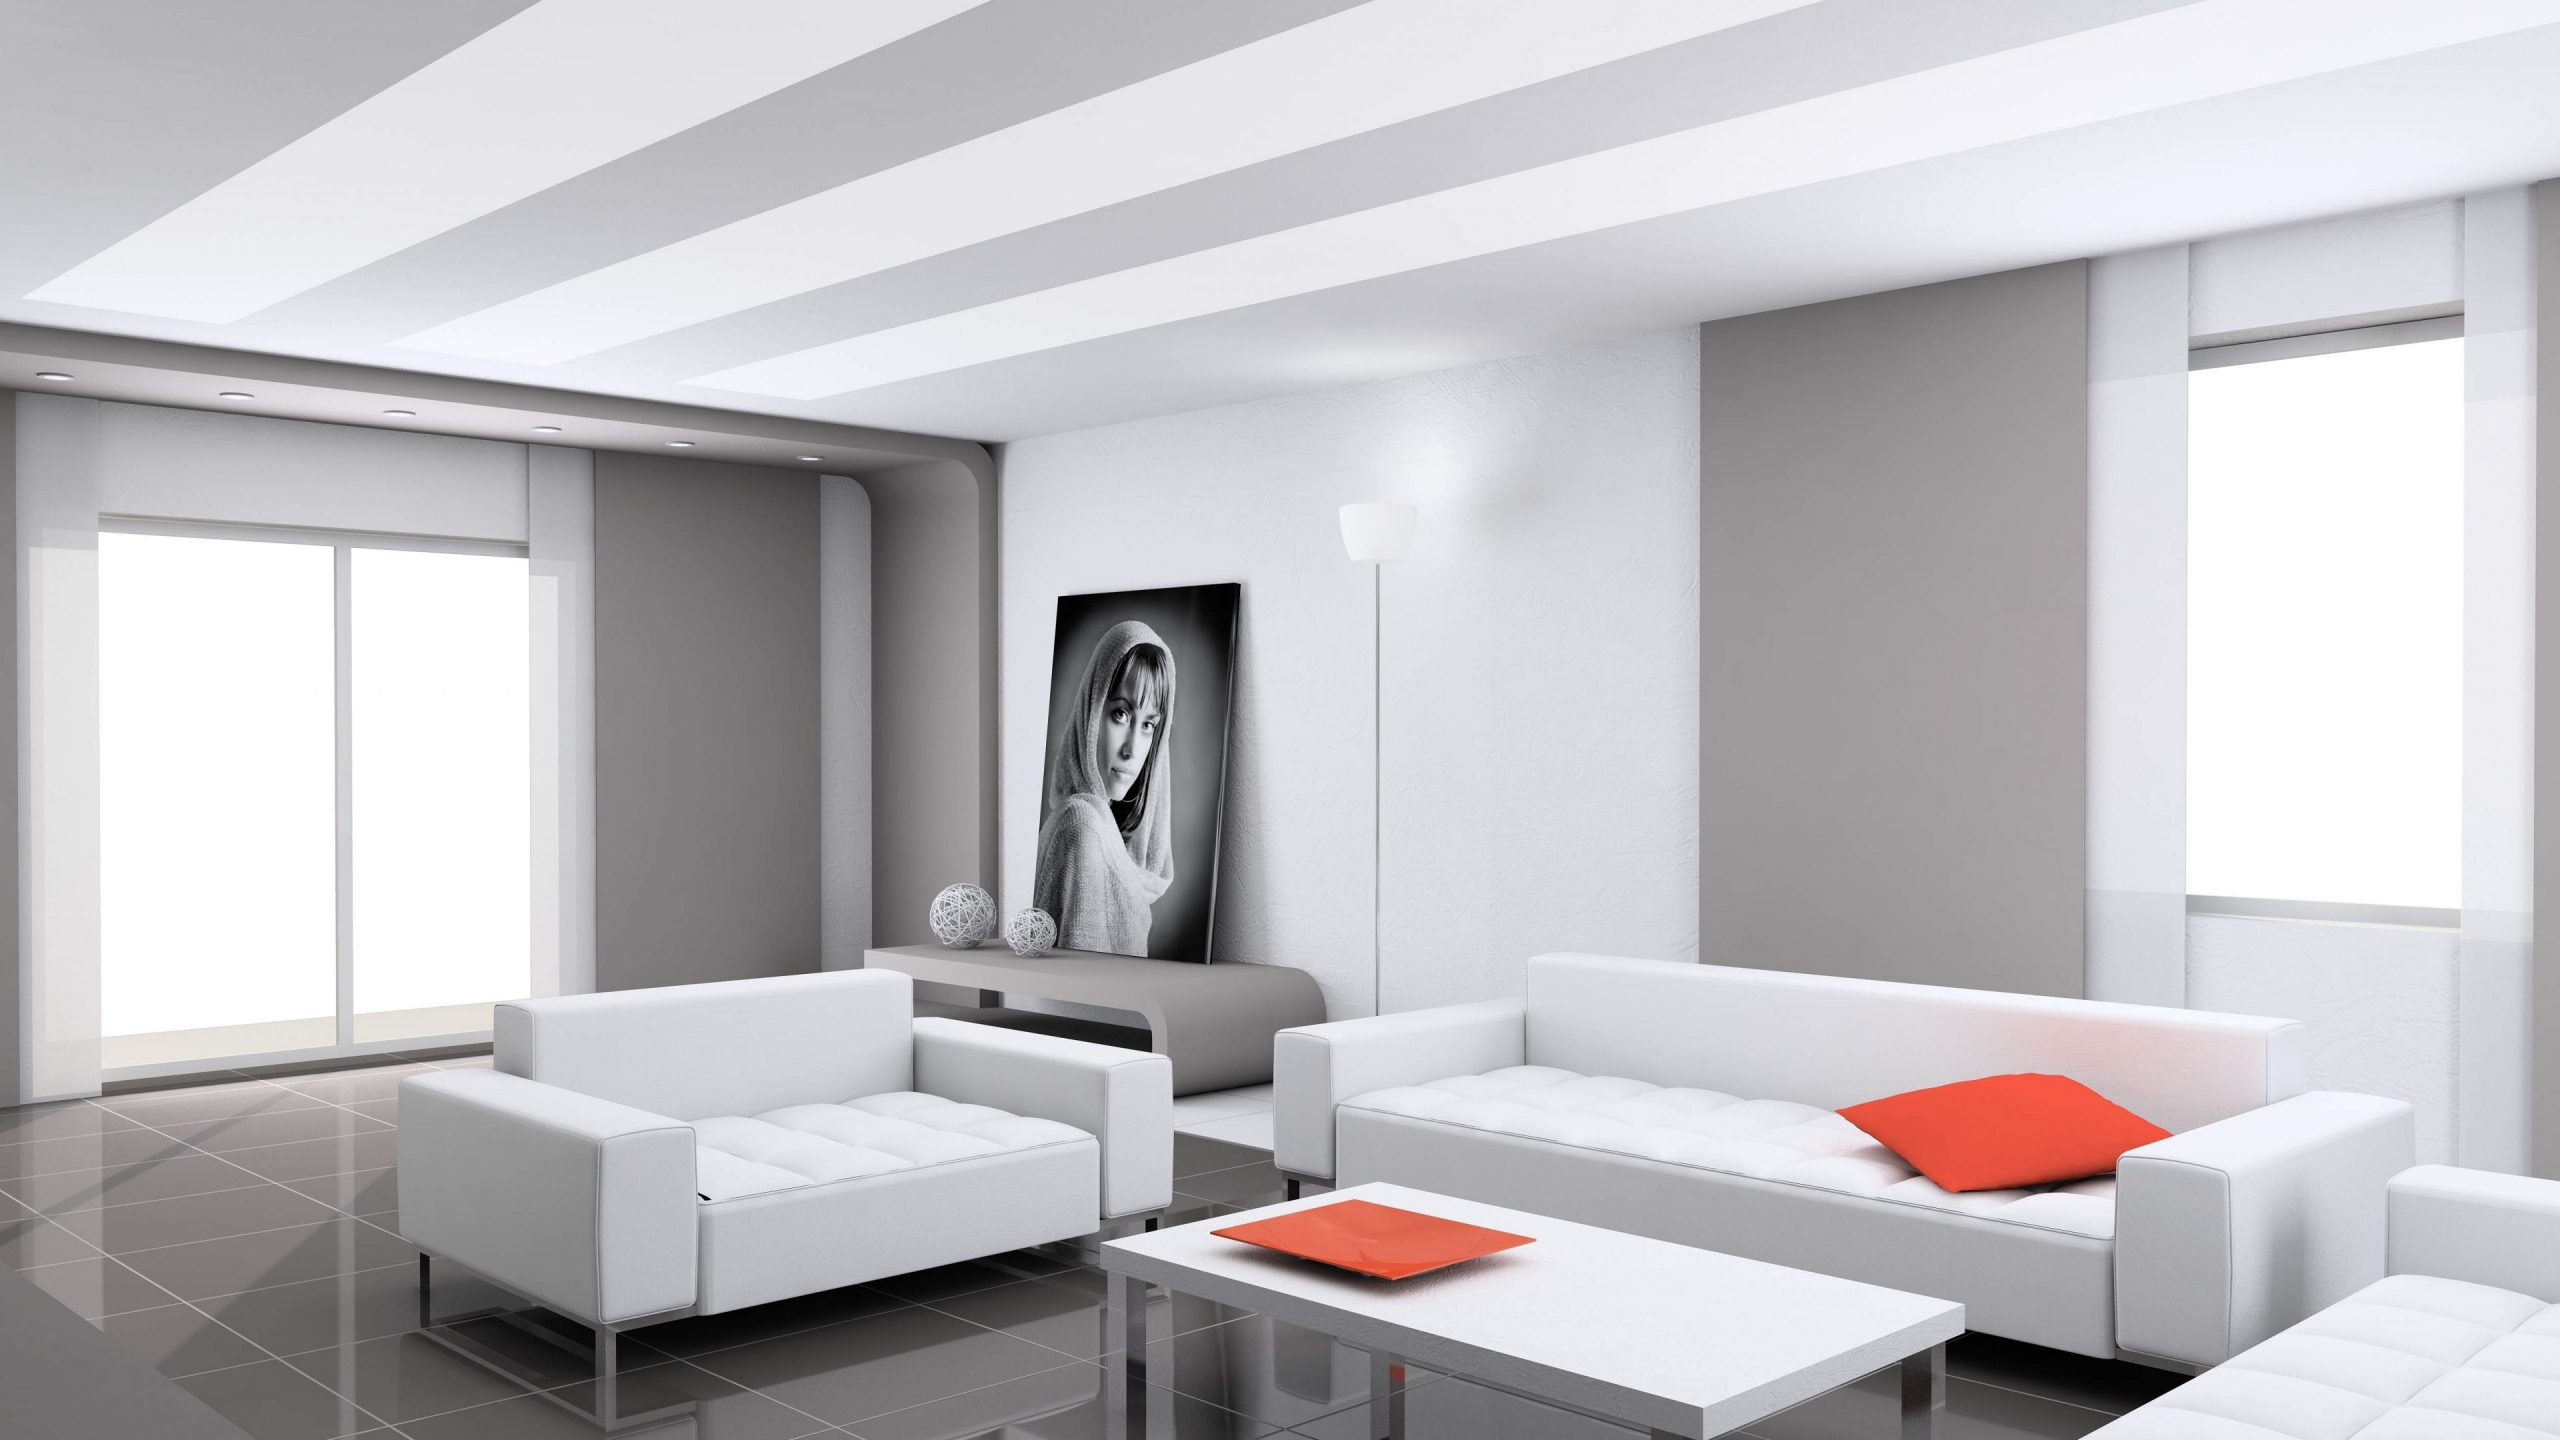 interior_graphic_living_room_furniture_80267_3840x2160